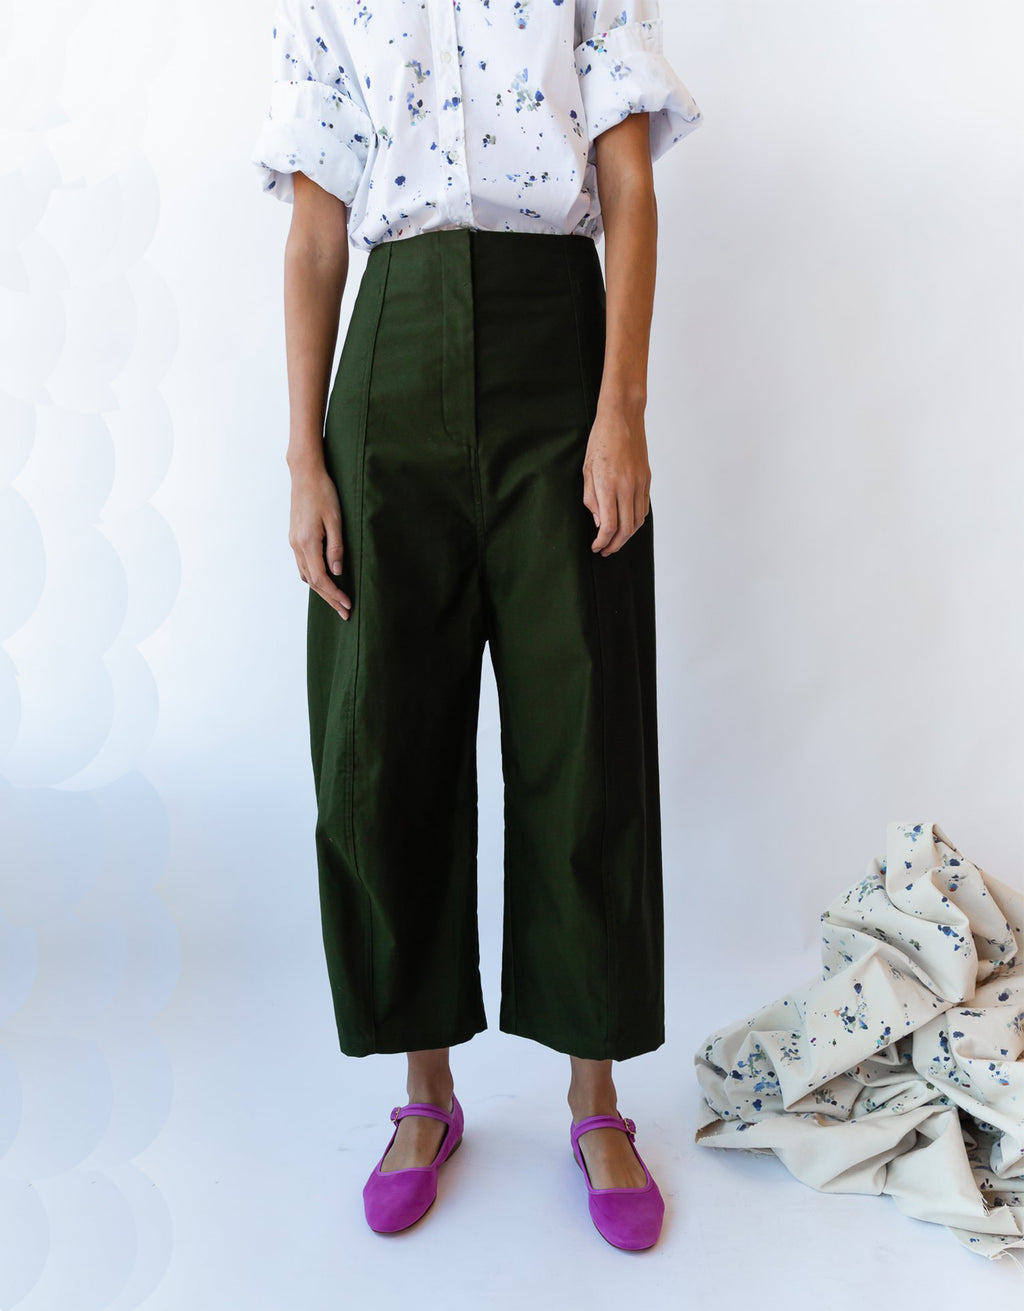 Model wears Caron Callahan Morris Pant in Olive. Available at FAWN Toronto.